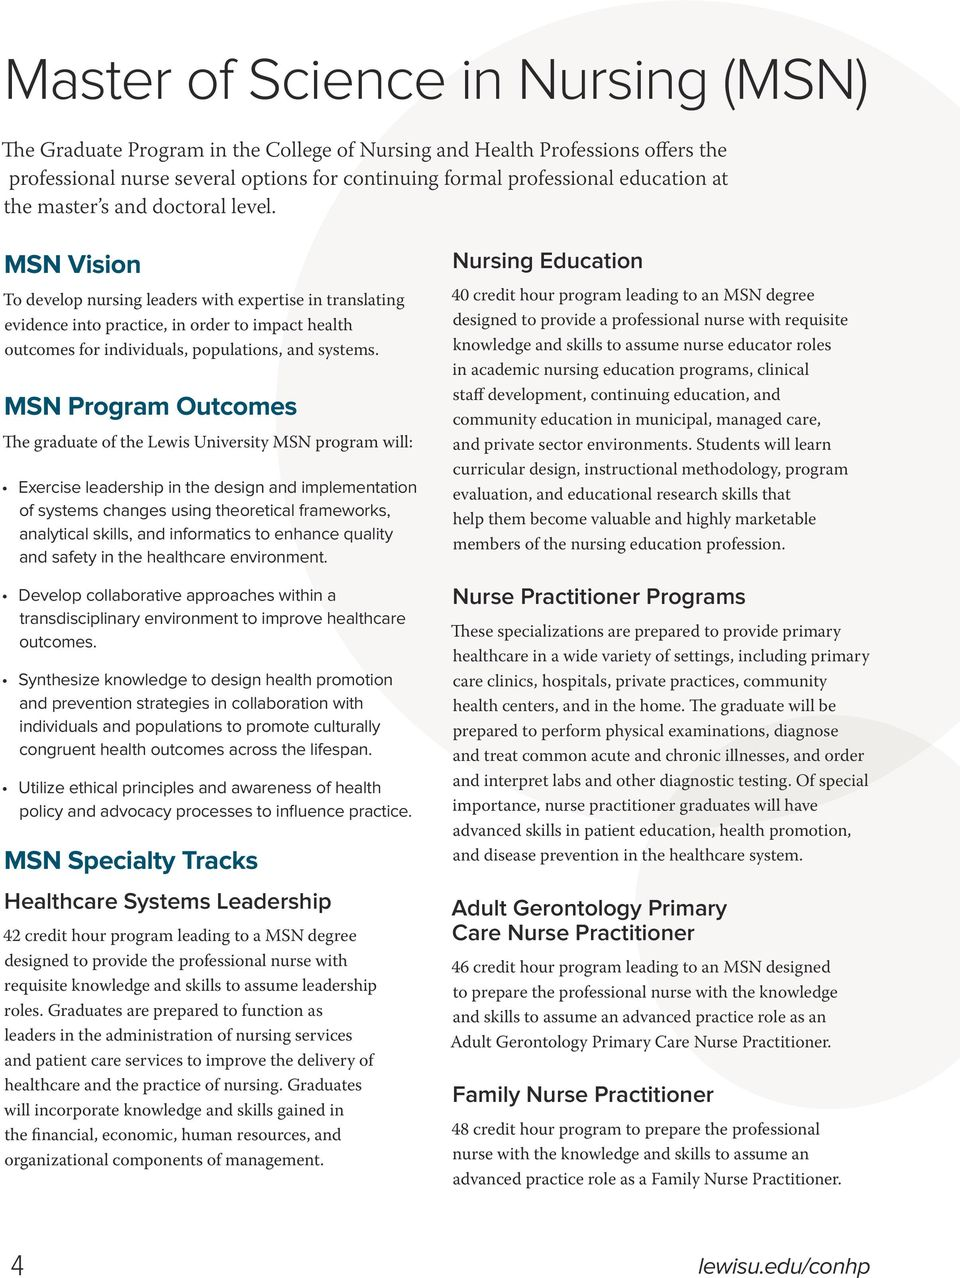 MSN Vision To develop nursing leaders with expertise in translating evidence into practice, in order to impact health outcomes for individuals, populations, and systems.